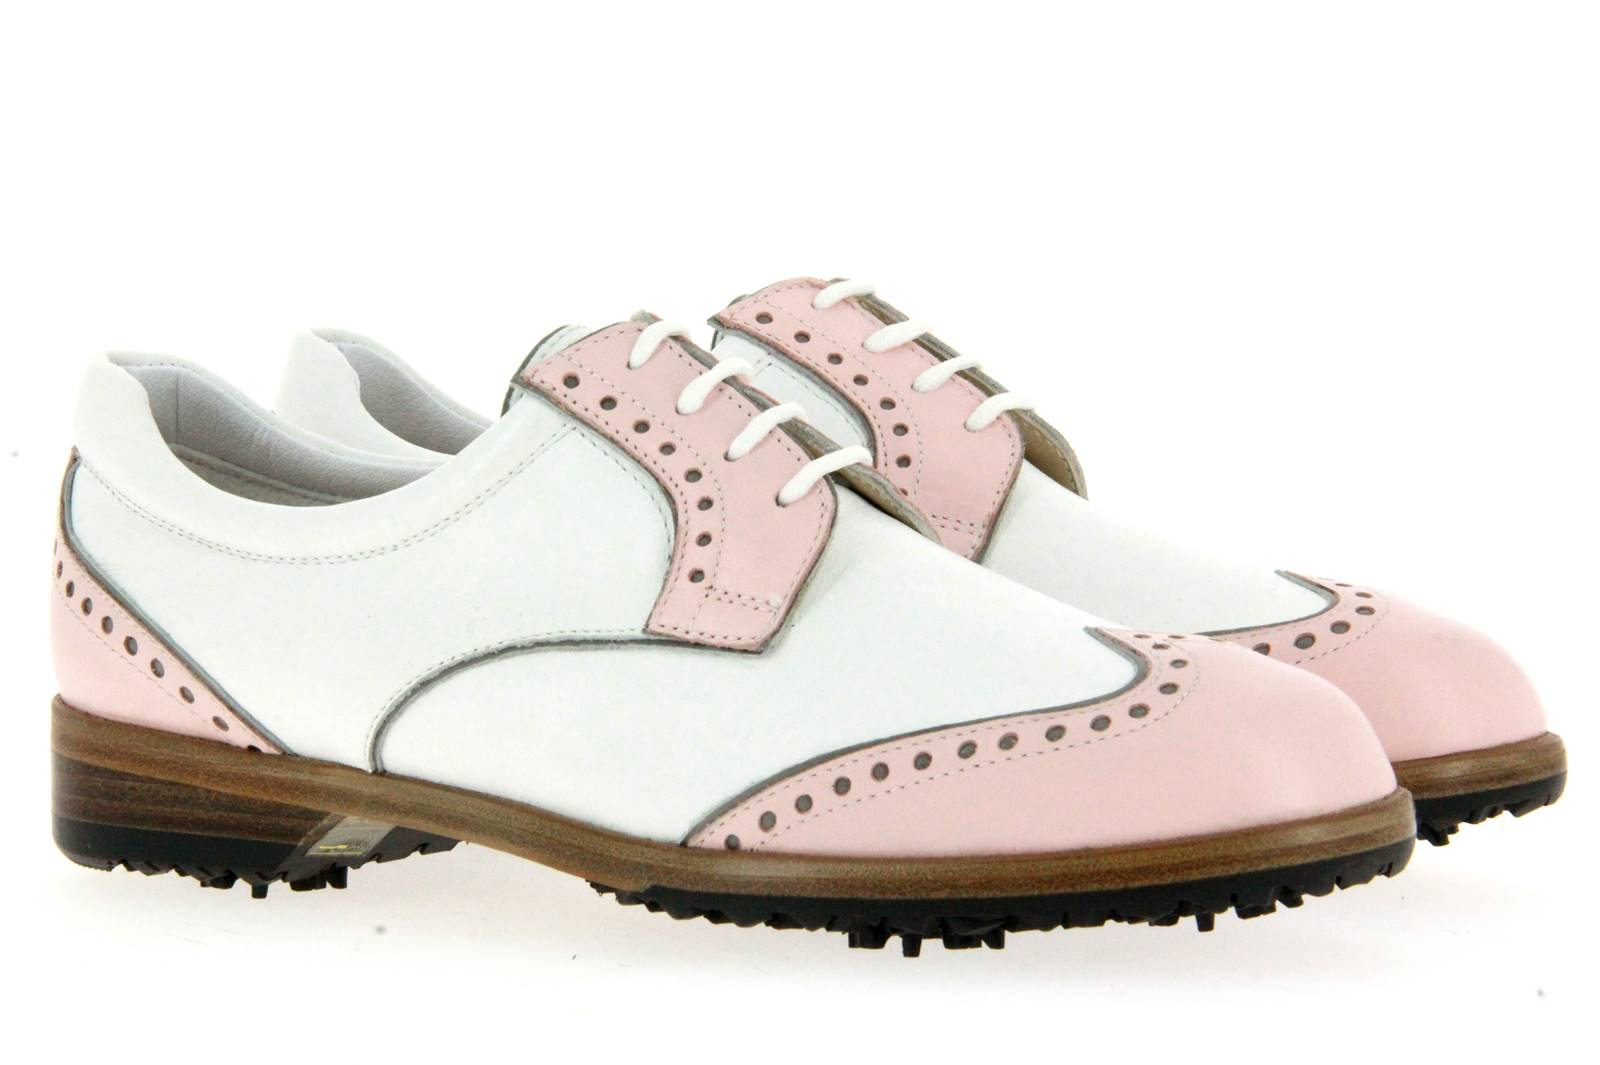 Tee Golf Shoes women's - golf shoe SALLY ROSA BIANCO